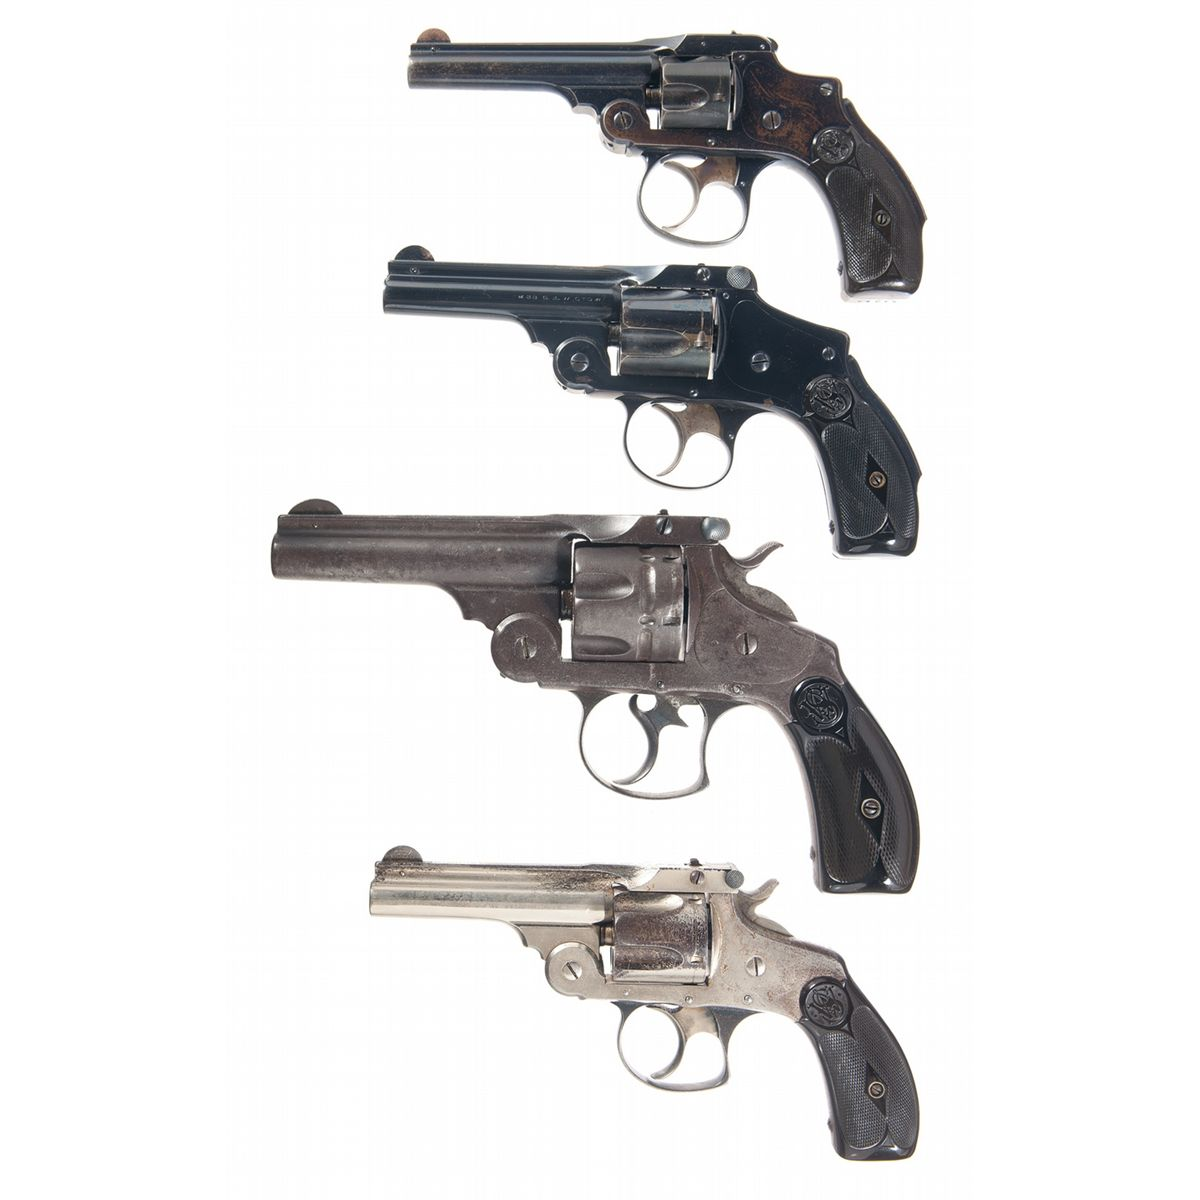 Four Smith & Wesson Double Action Revolvers -A) Smith